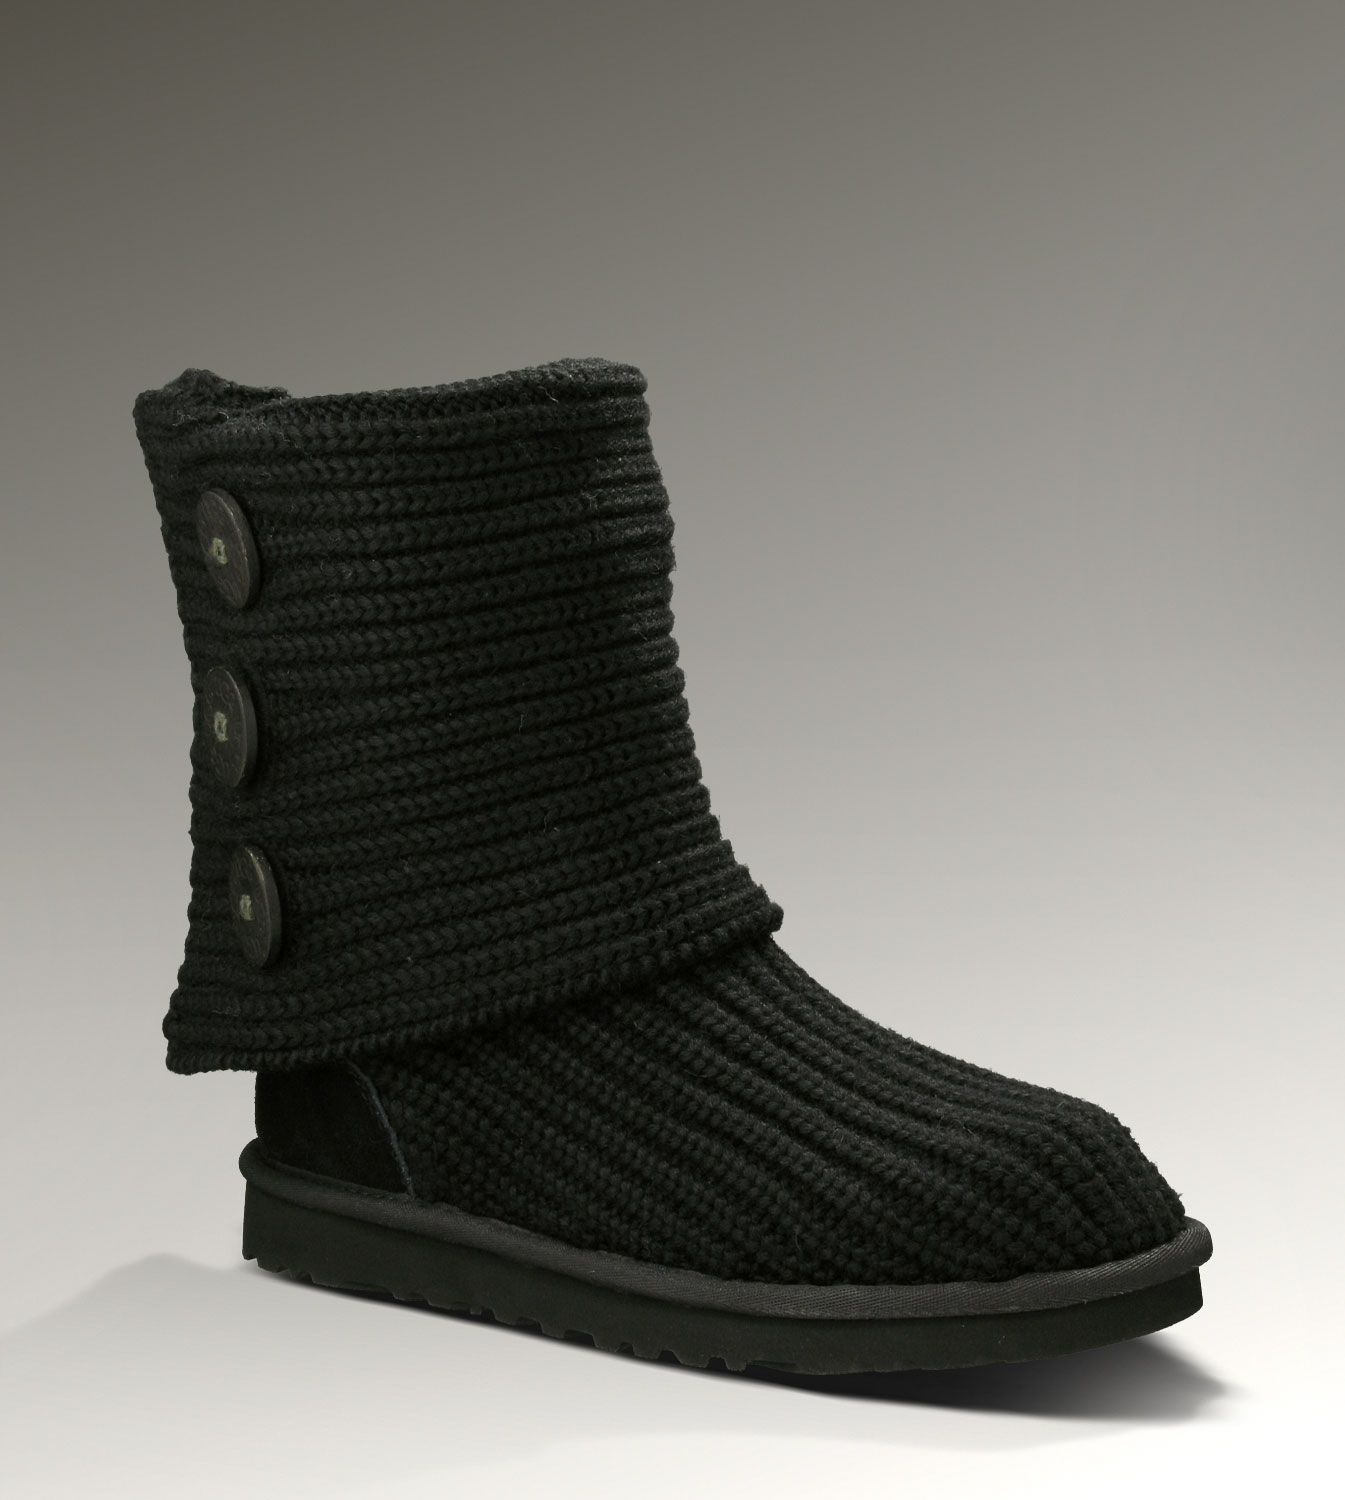 Ugg Classic Cardy 5819 Boots | Ugg classic cardy, Knit ugg